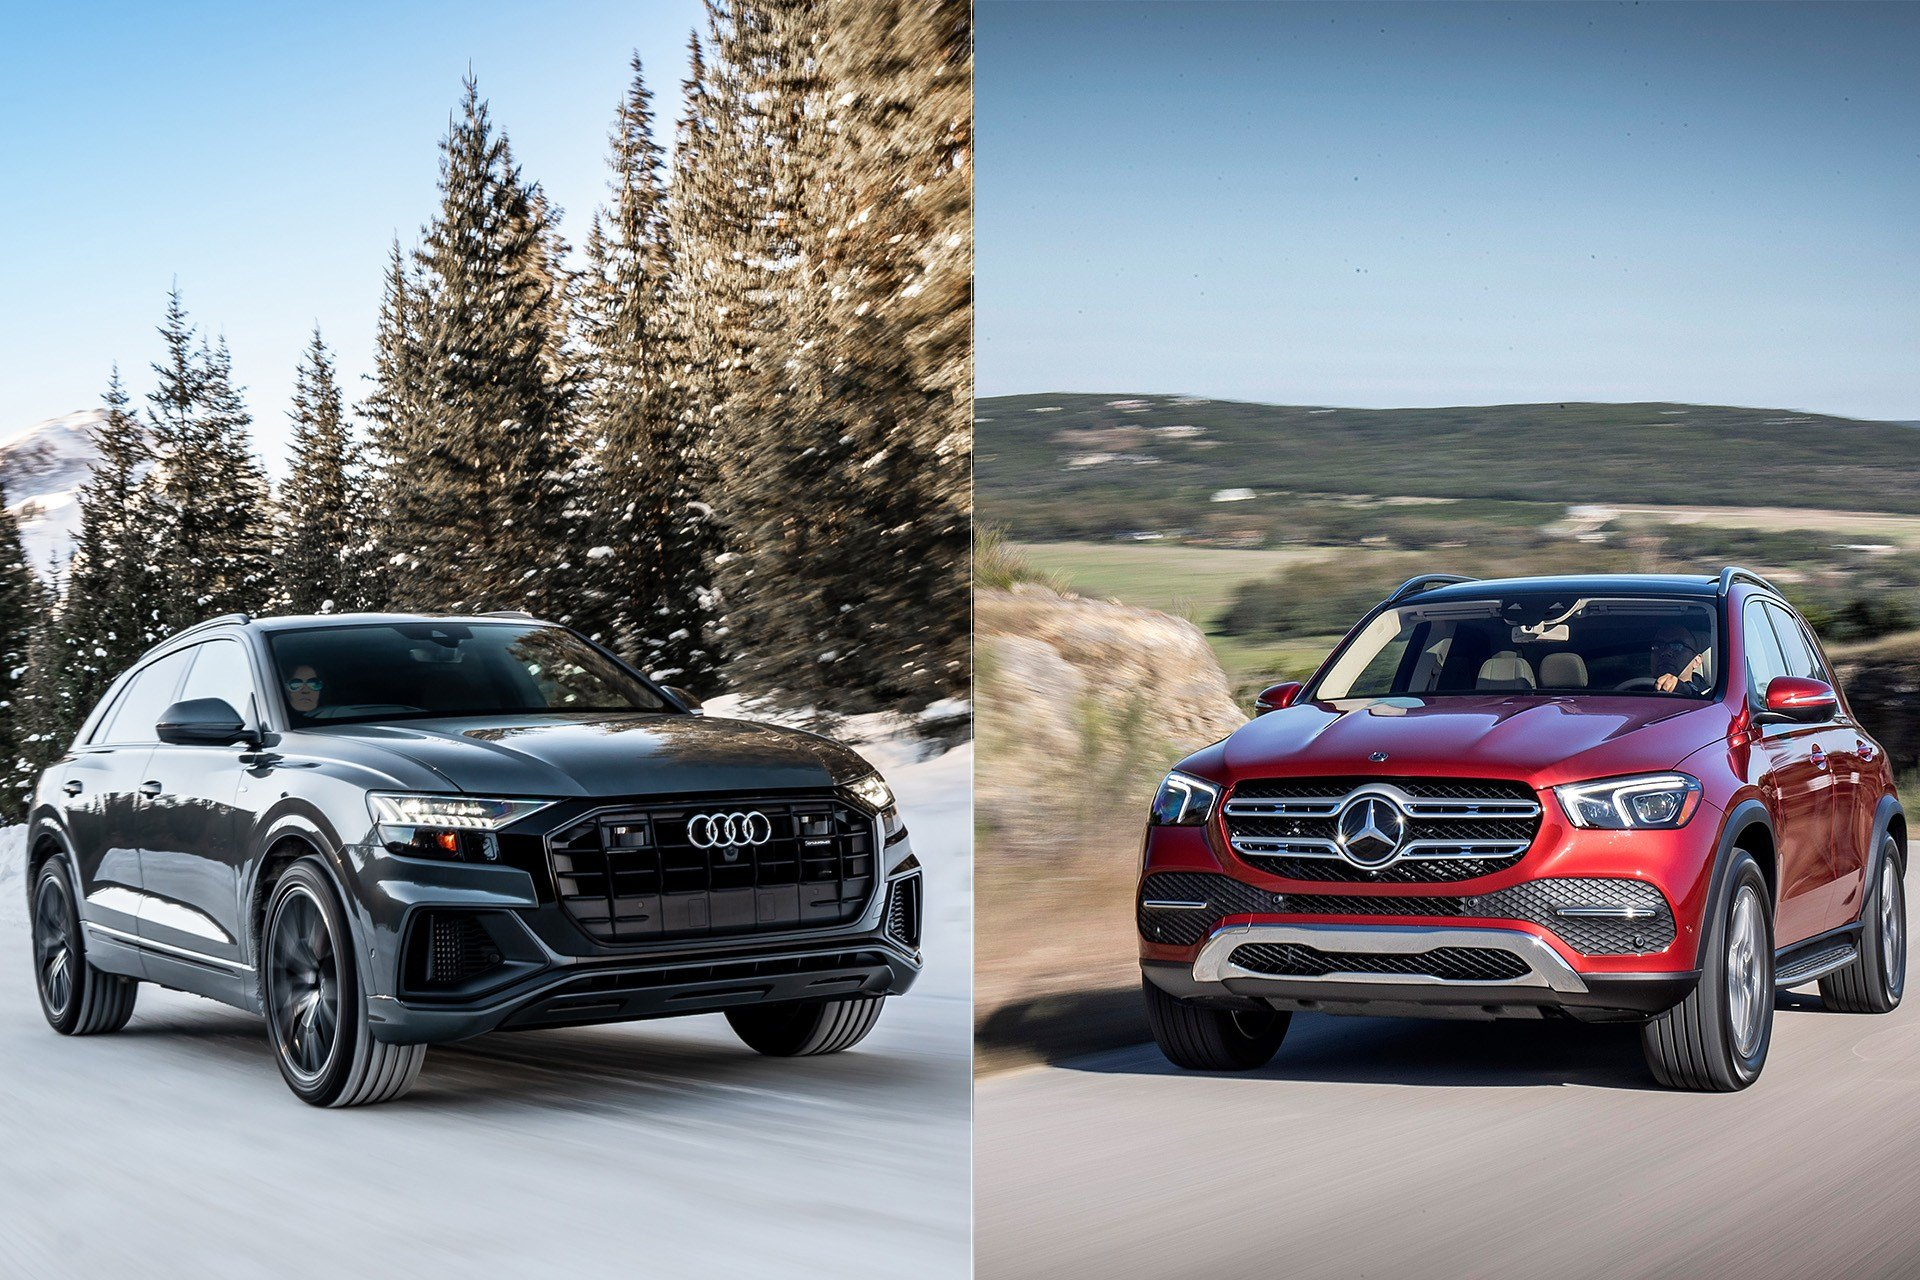 Latest Luxury Suv Rumble In The Rockies 2019 Audi Q8 Vs 2020 Free Download